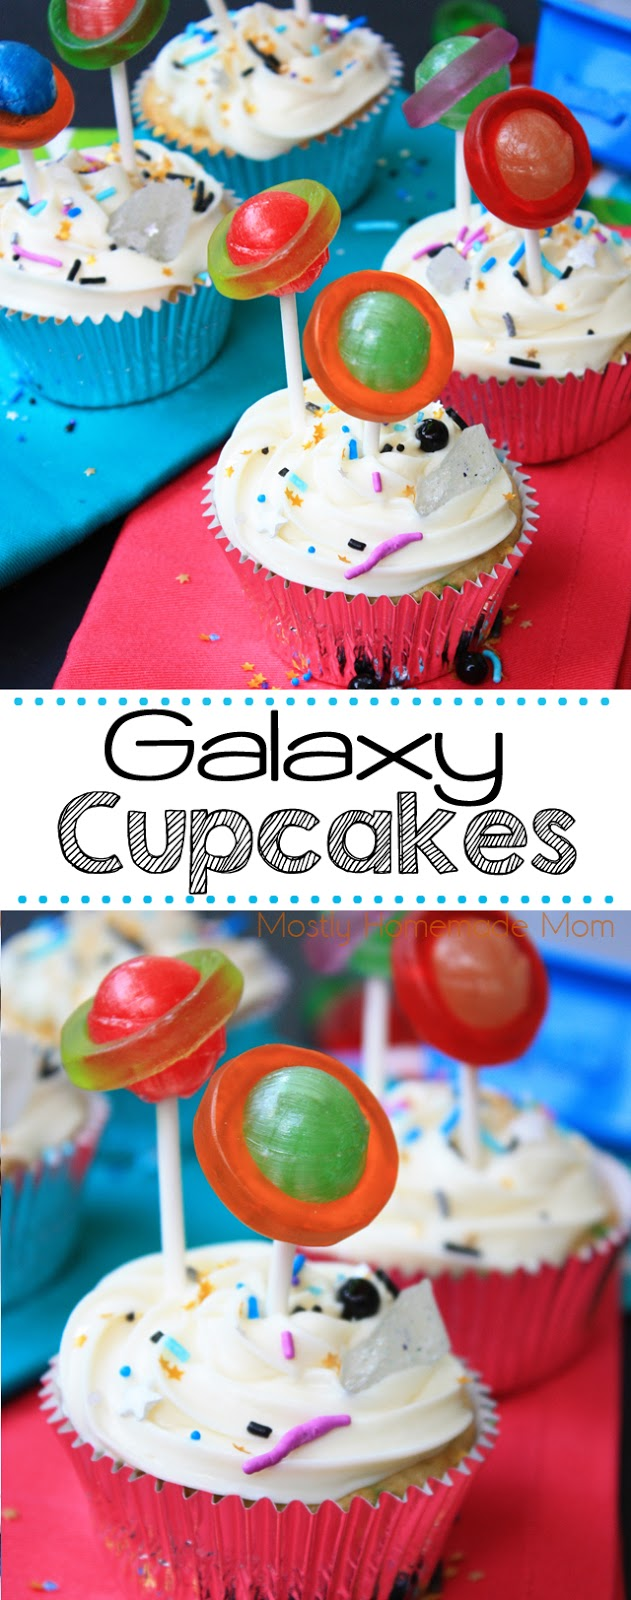 Galaxy planet cupcakes with lollipops